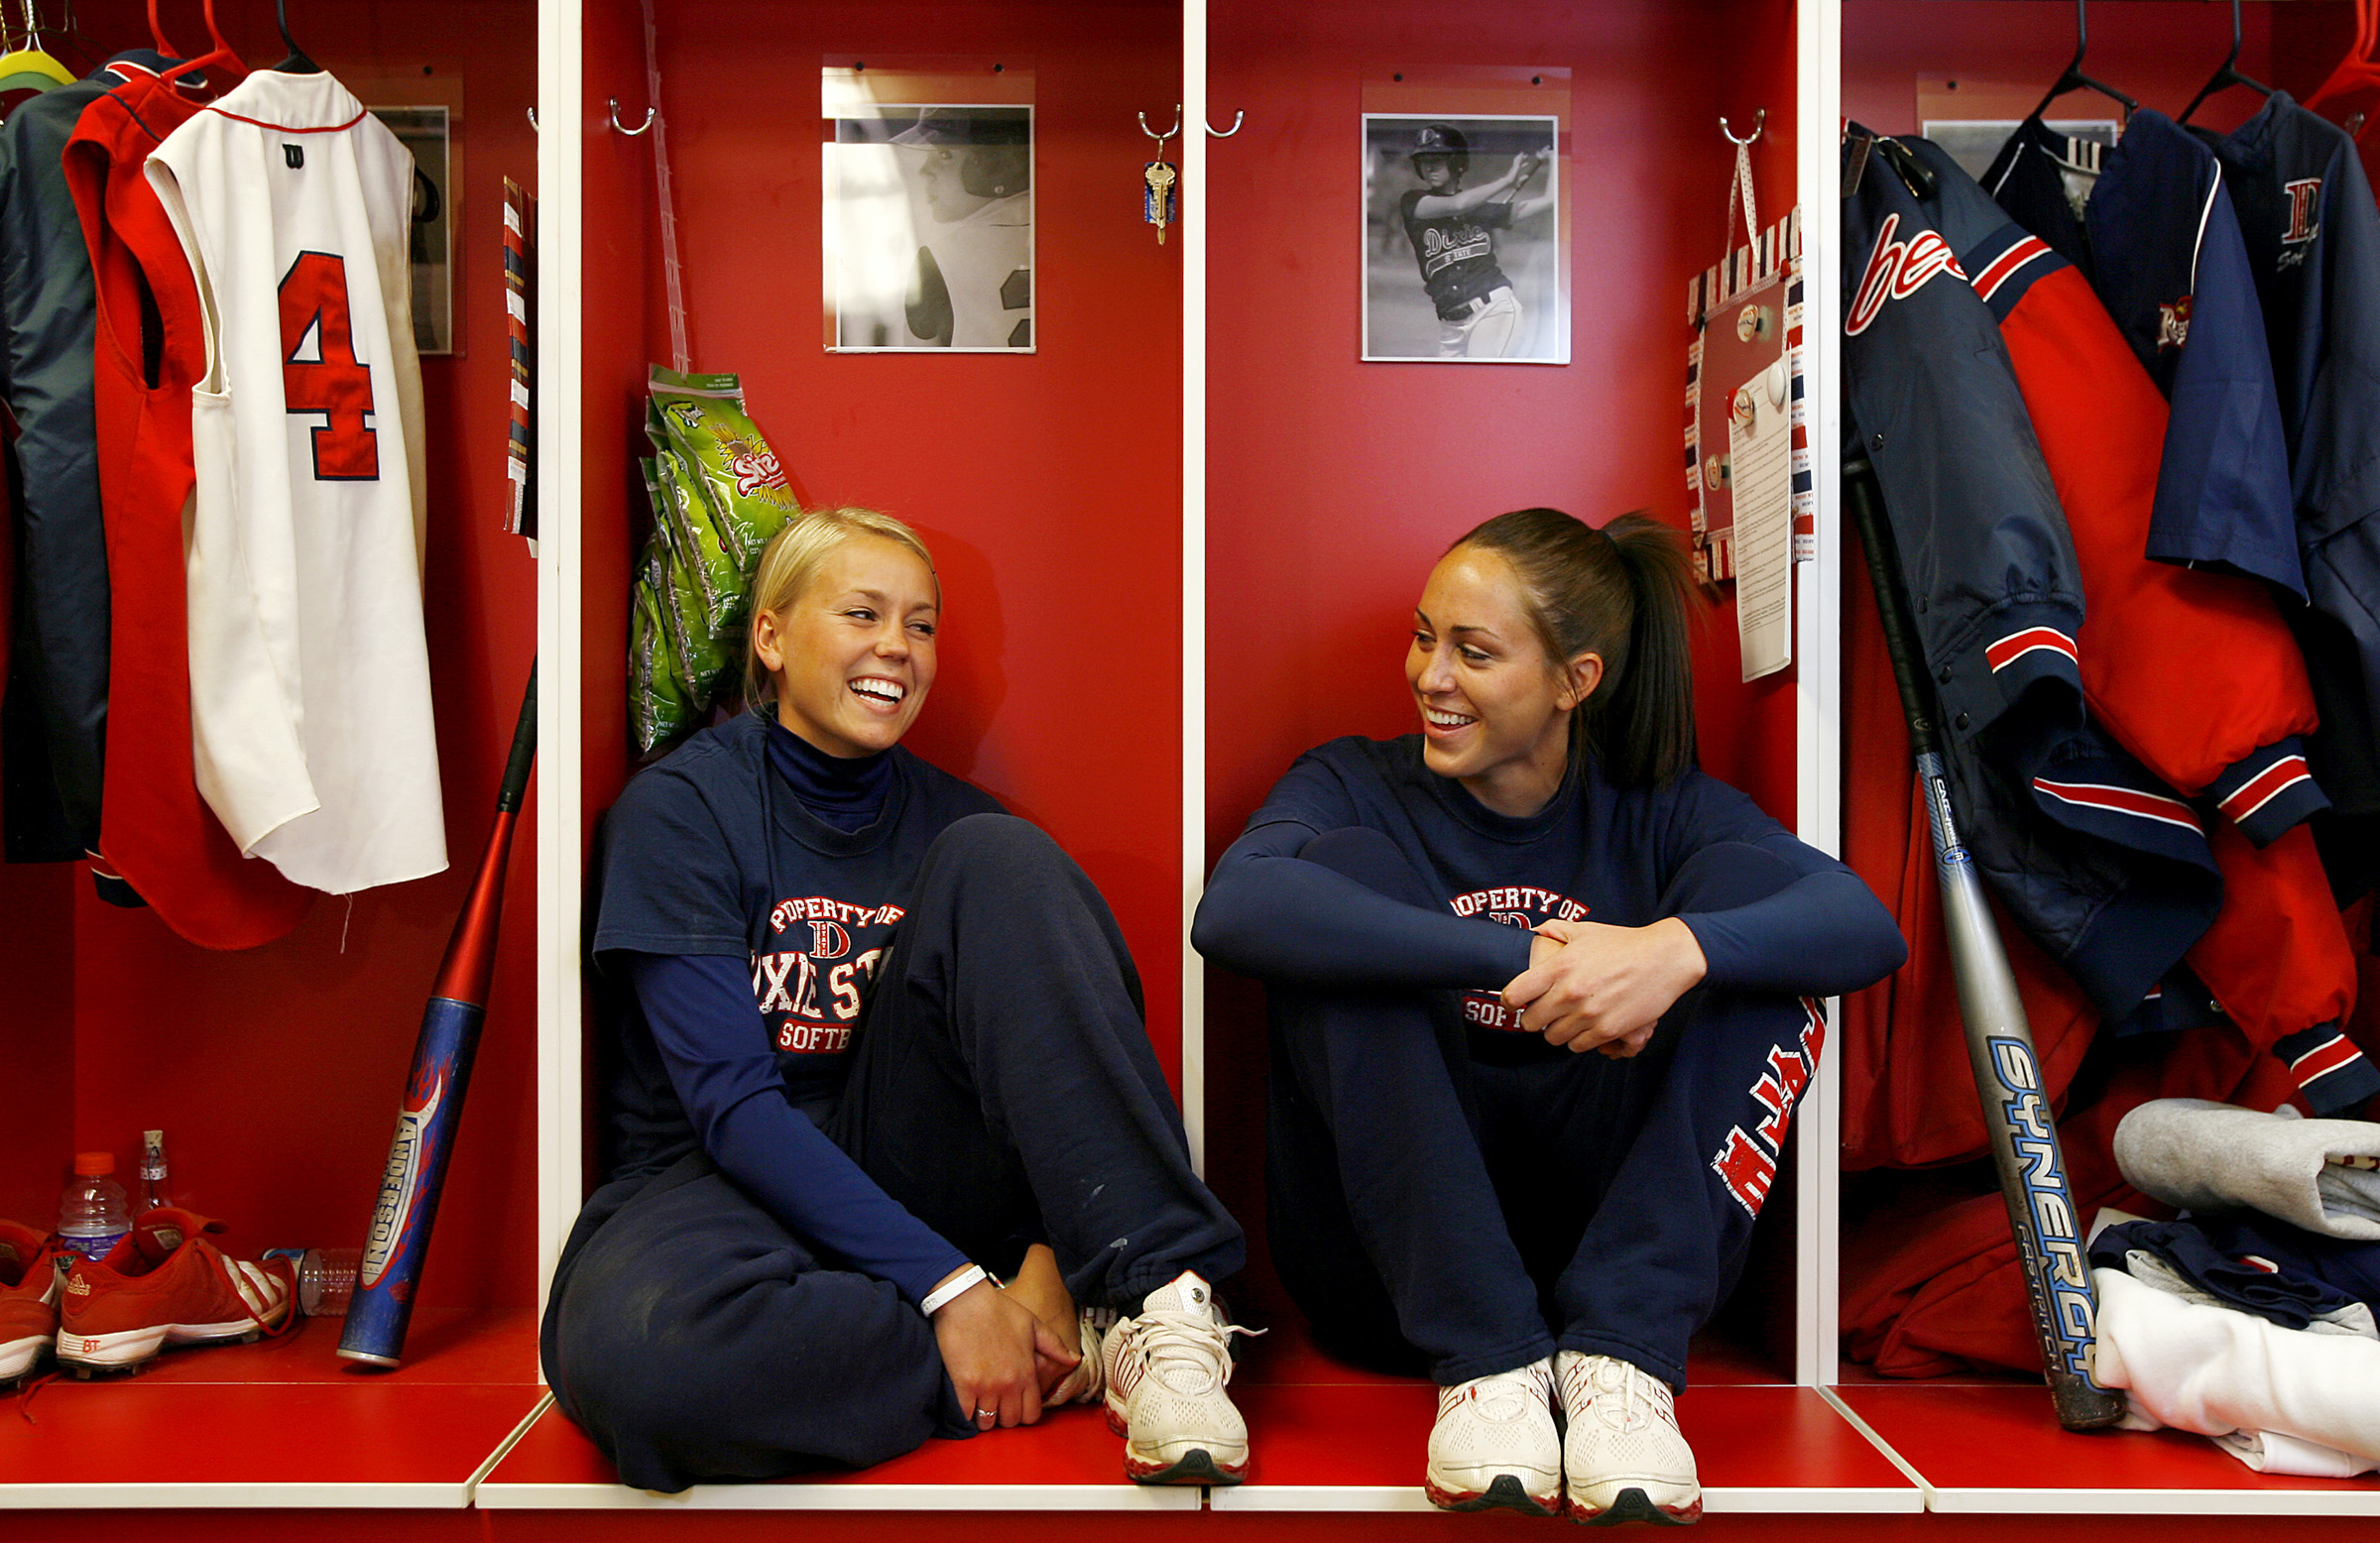 Christopher Onstott/The Spectrum